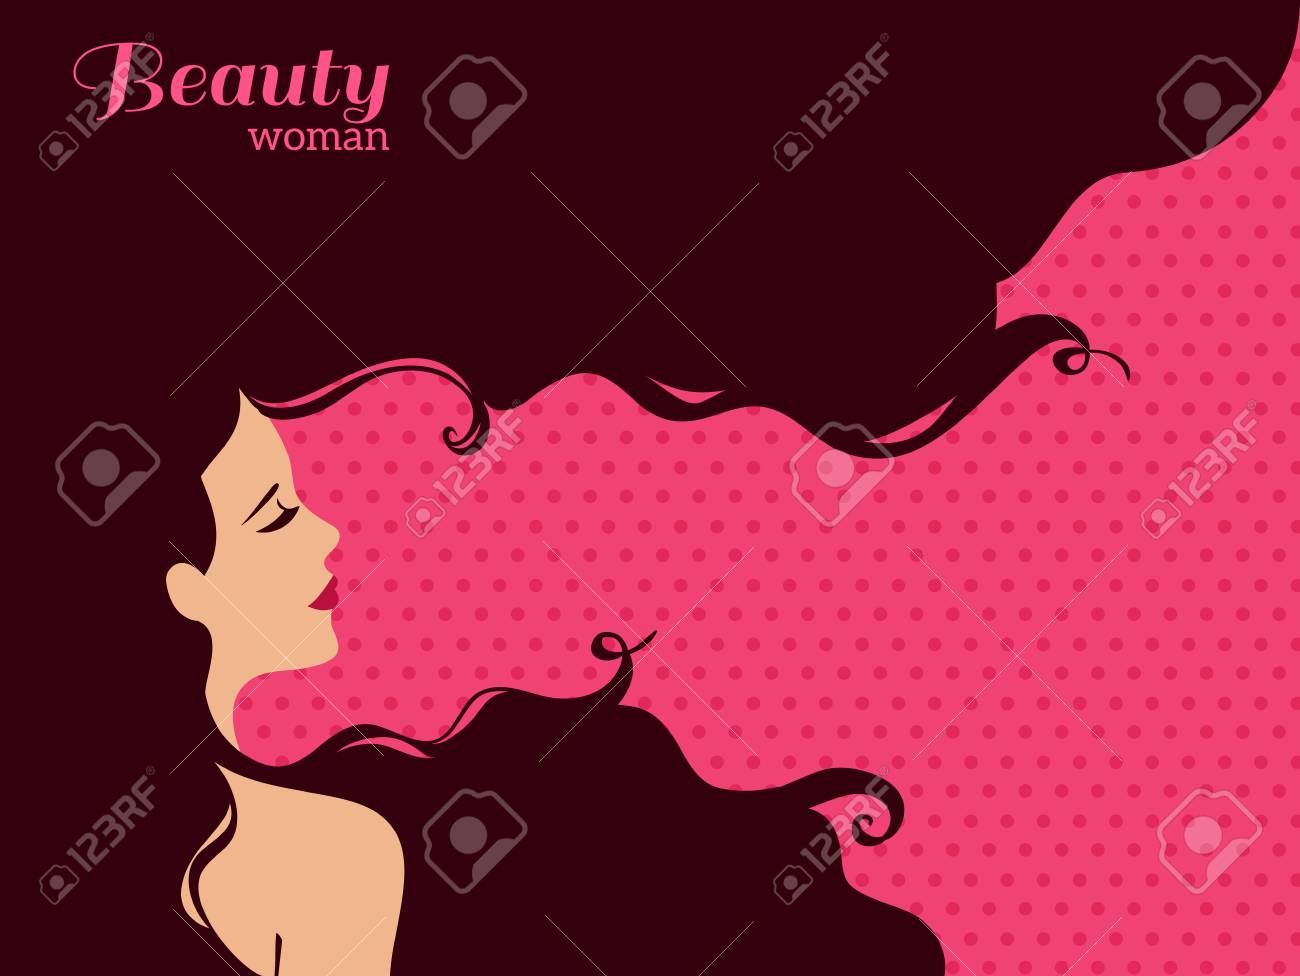 Vintage Fashion Woman With Long Hair Vector Illustration Stylish Royalty Free Cliparts Vectors And Stock Illustration Image 54940227